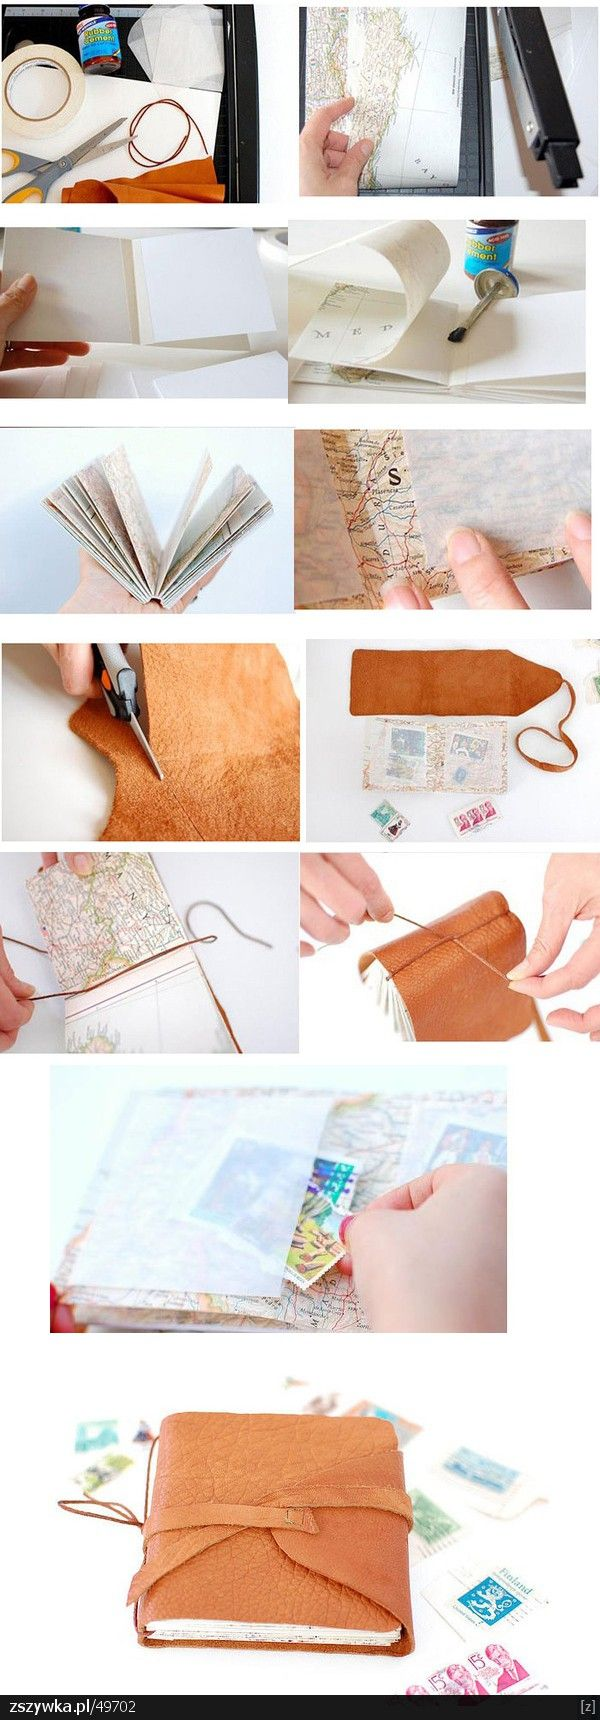 diy bound journal. Oh my god I am so gonna do this!